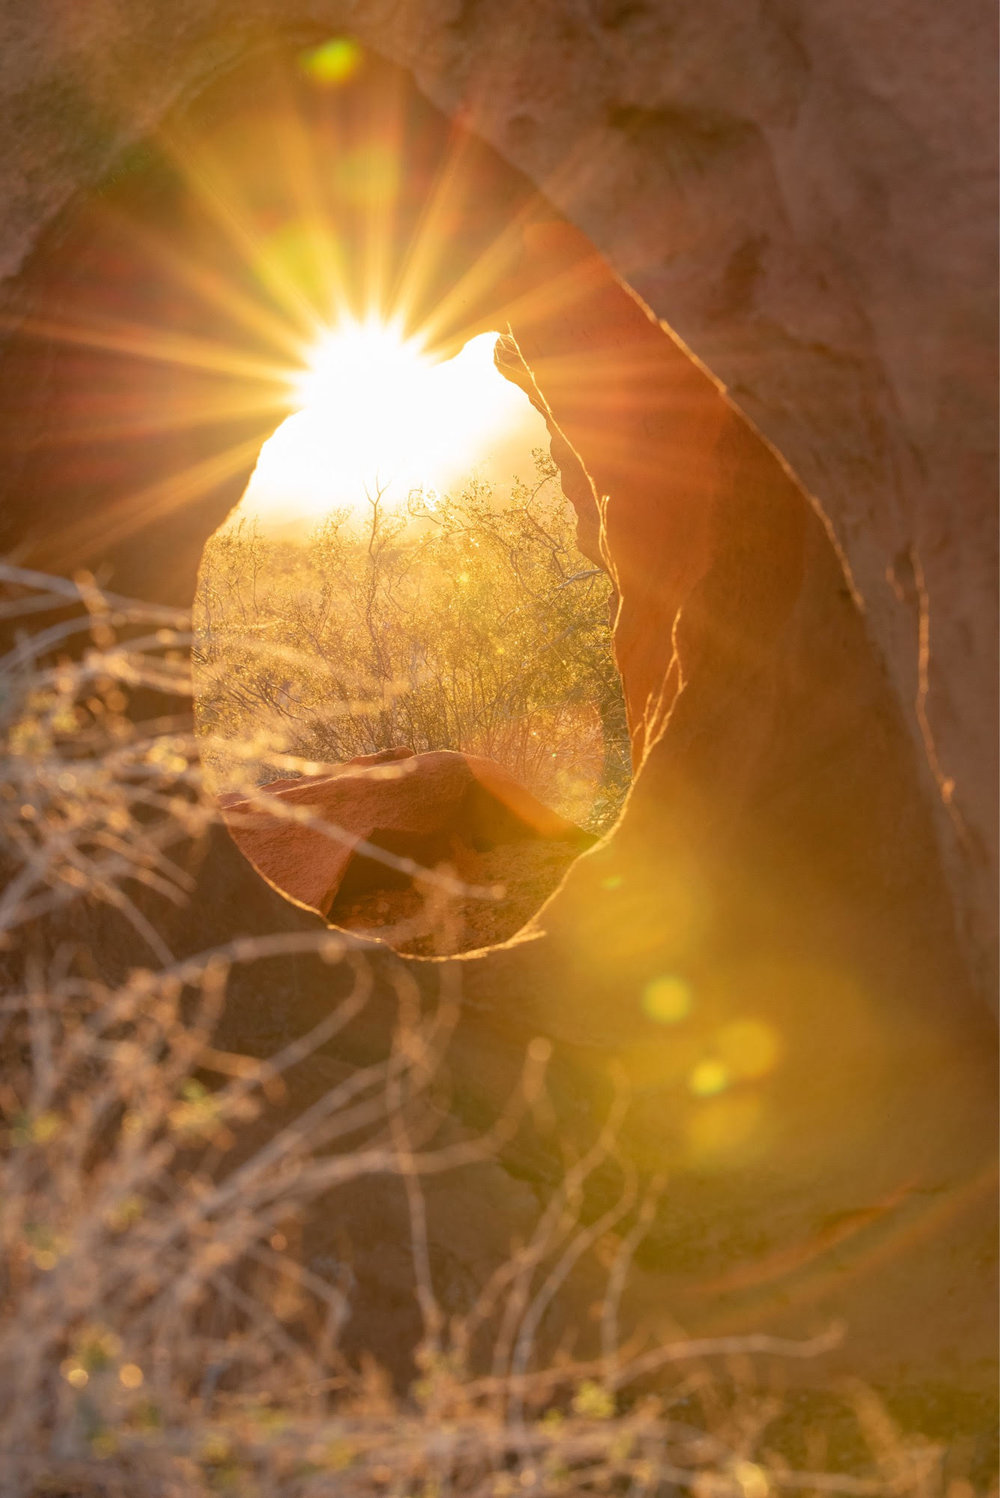 I took this in early November, and loved capturing the sunburst through the hole in the red rocks.